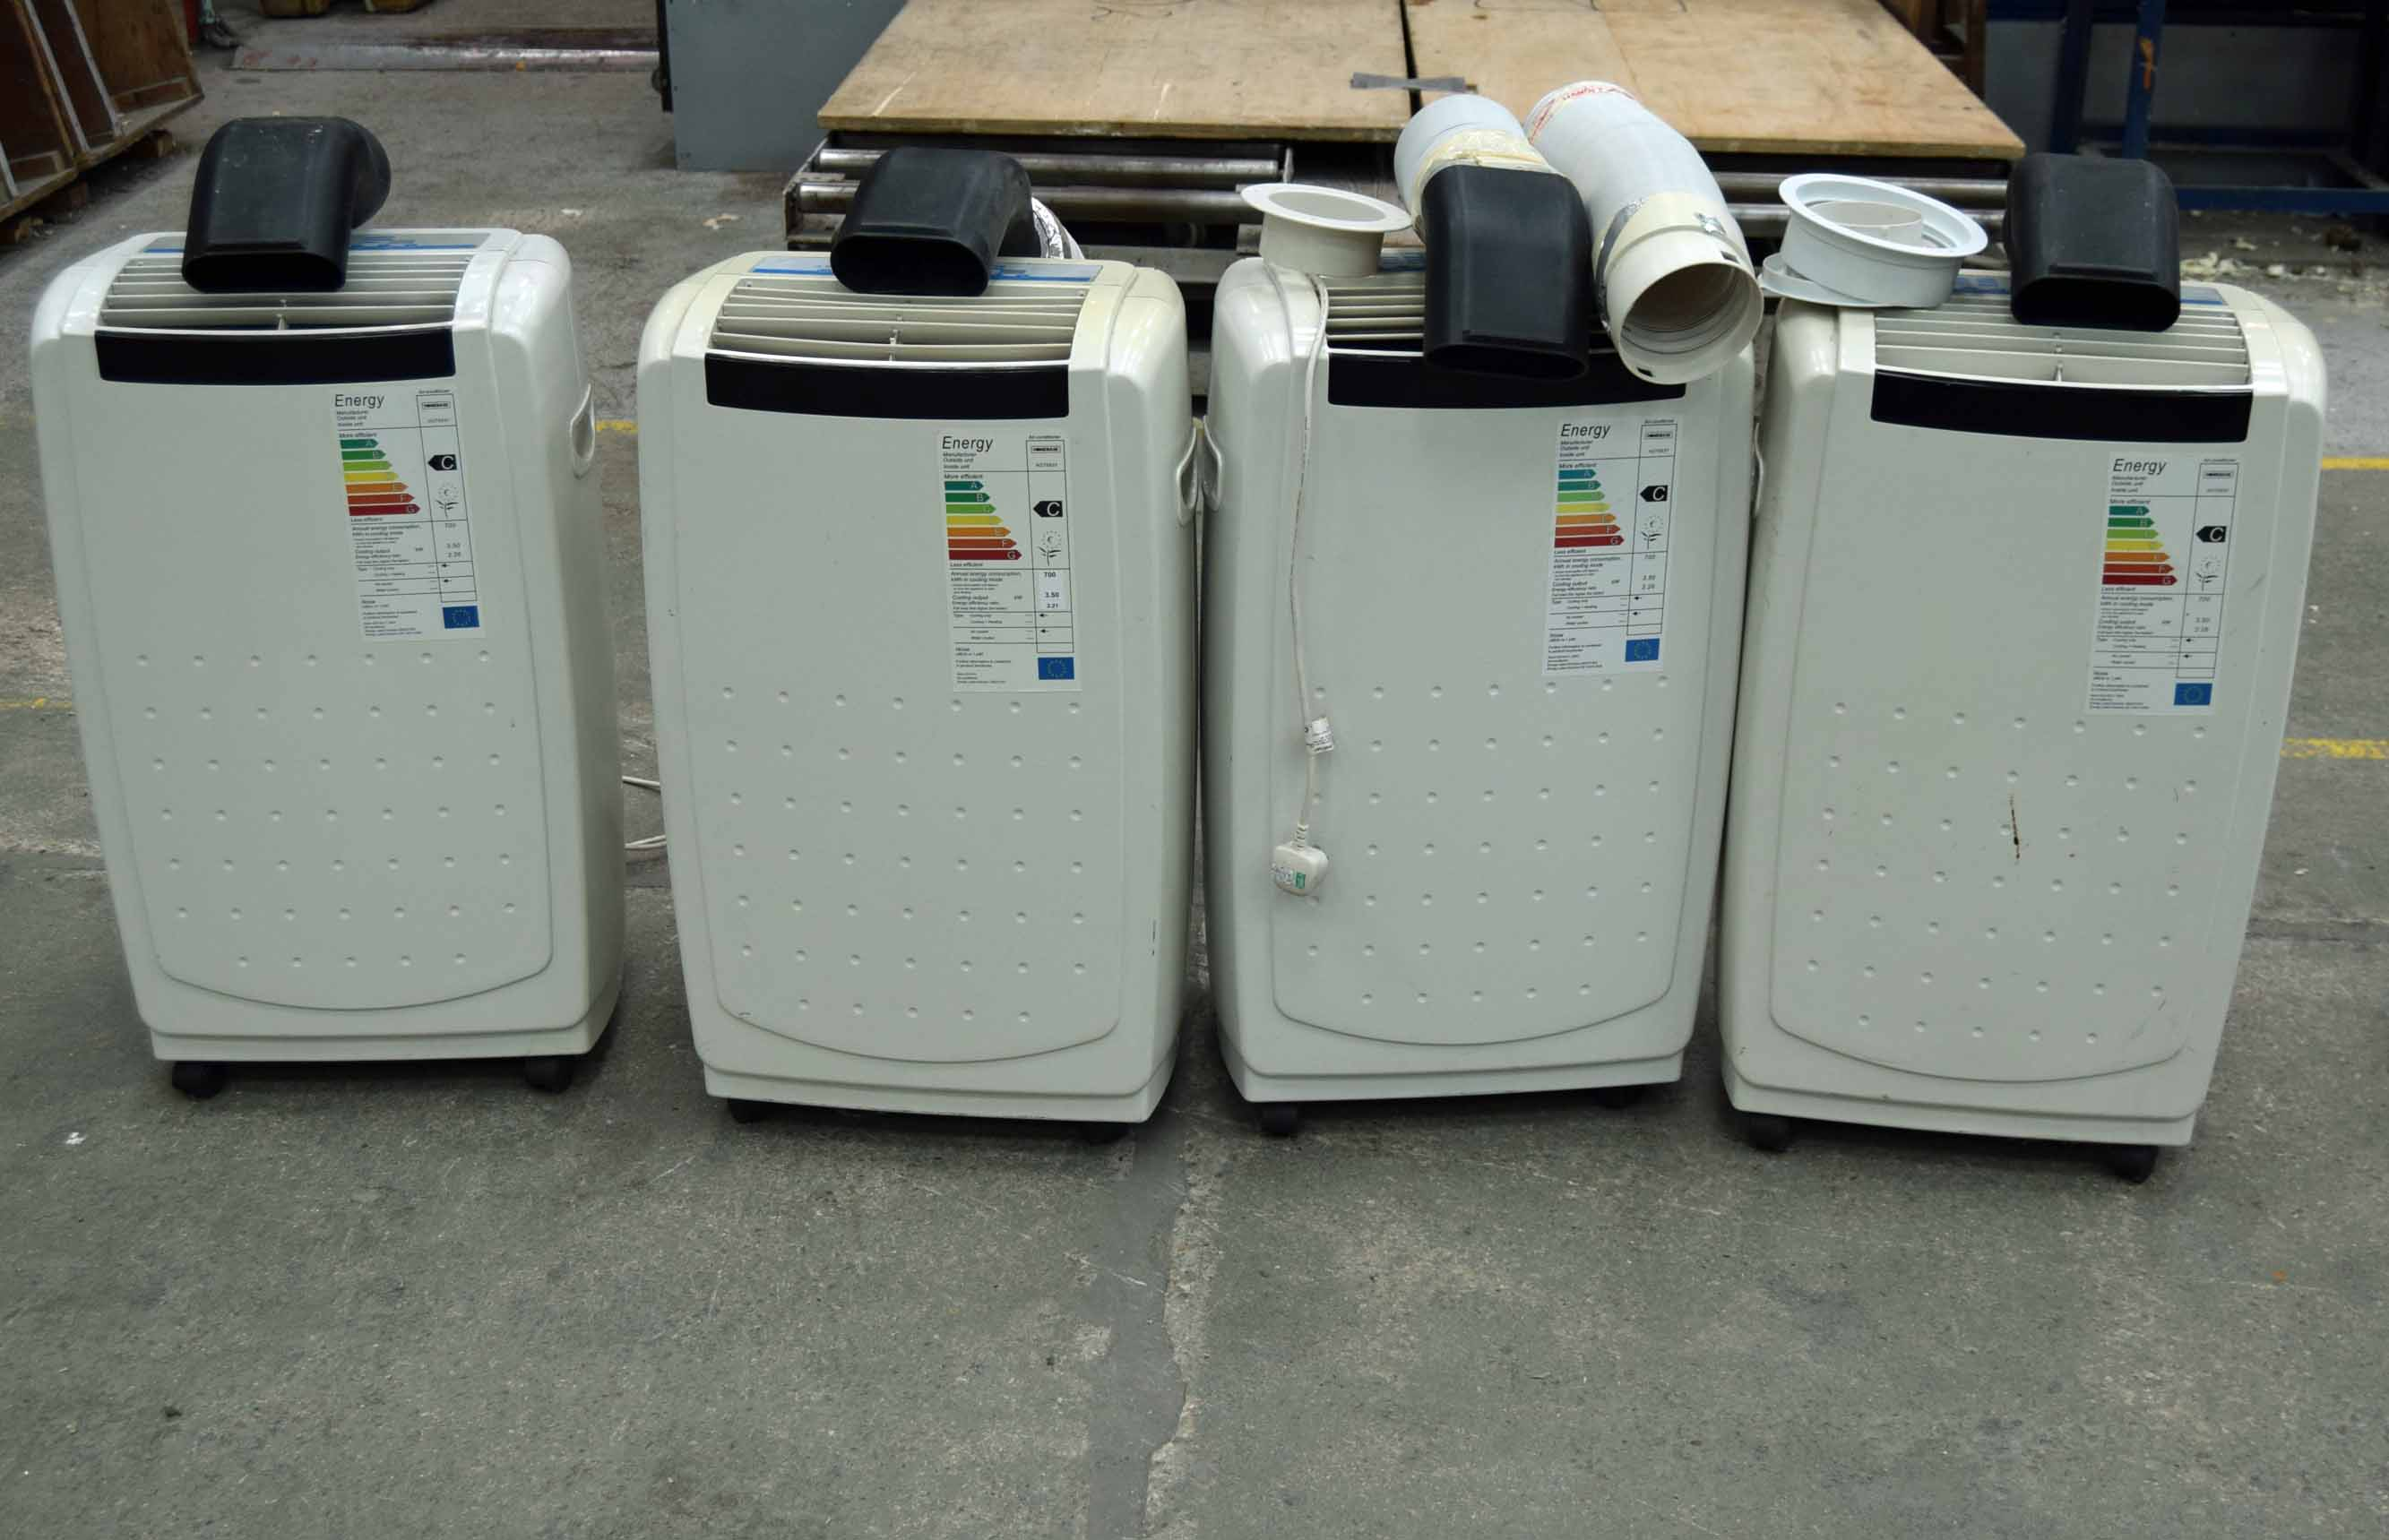 Lot 15 - Four Portable Heavy Duty Airconditioning Units (As Photographed)